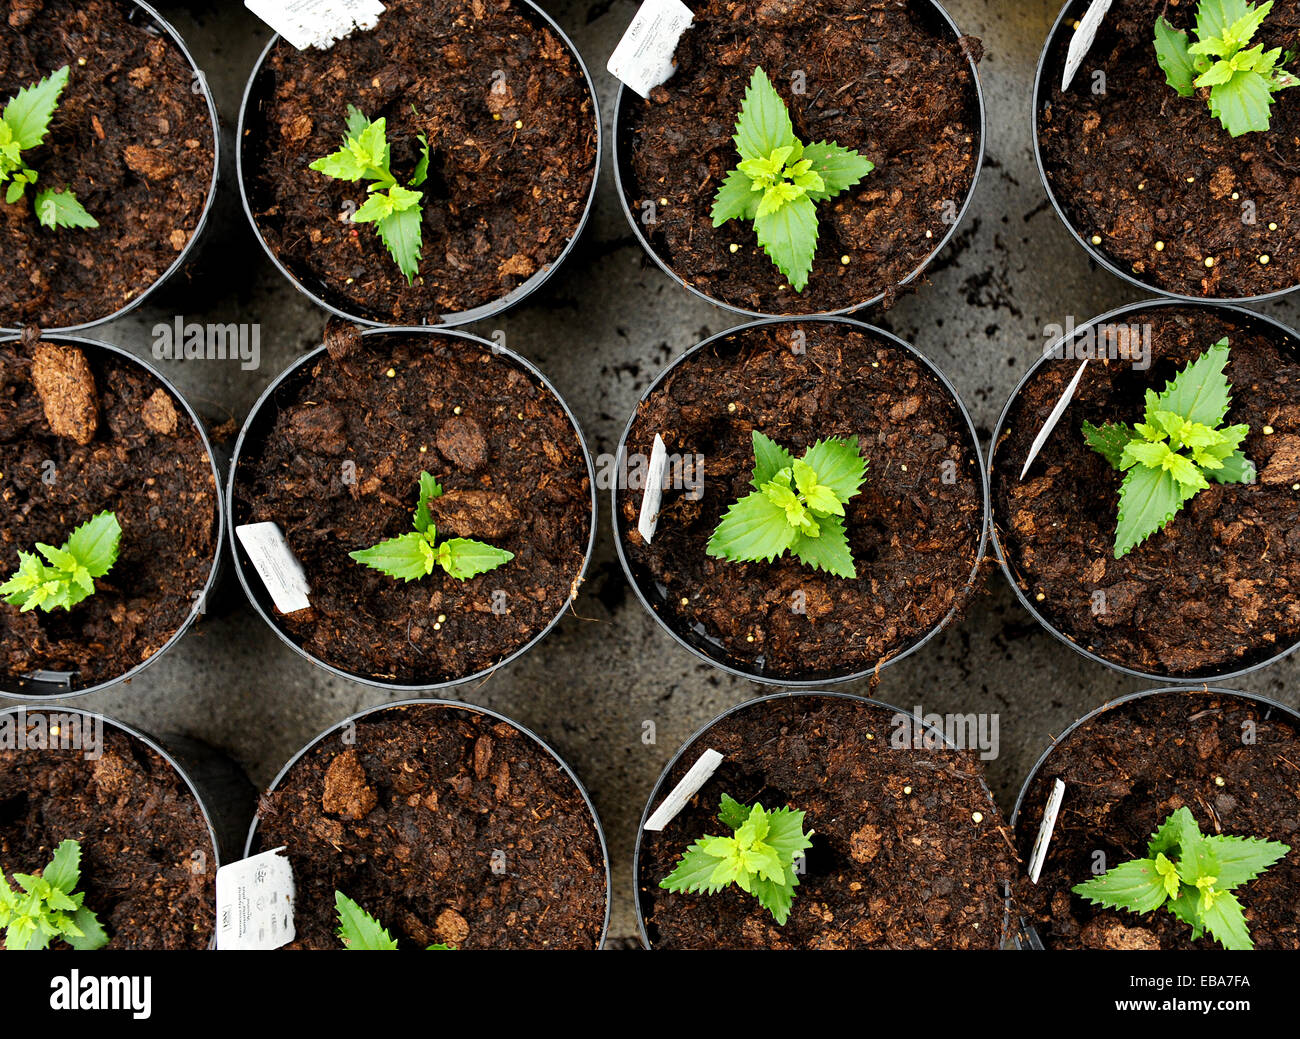 Overhead view of young nemesia seedlings in flowerpots with information labels being cultivated at a nursery of - Stock Image